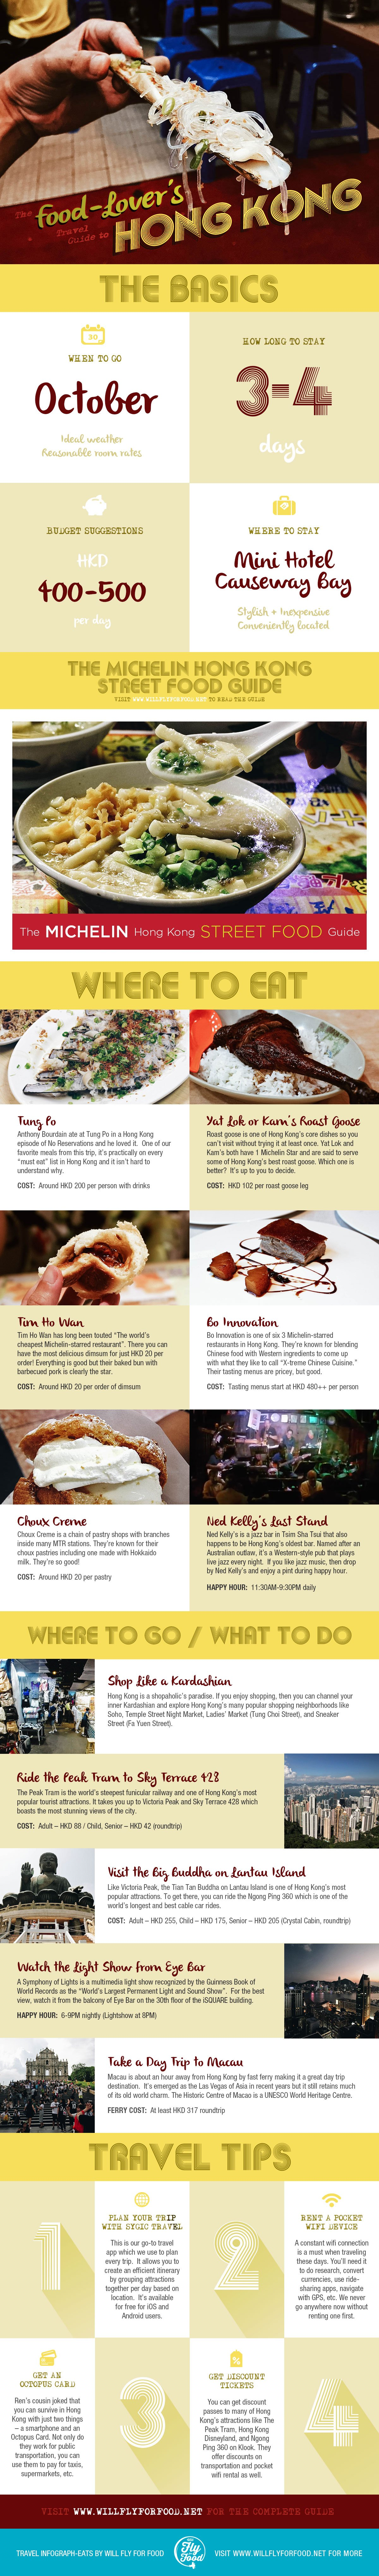 INFOGRAPHIC:  Food-Lover's Travel Guide to Hong Kong